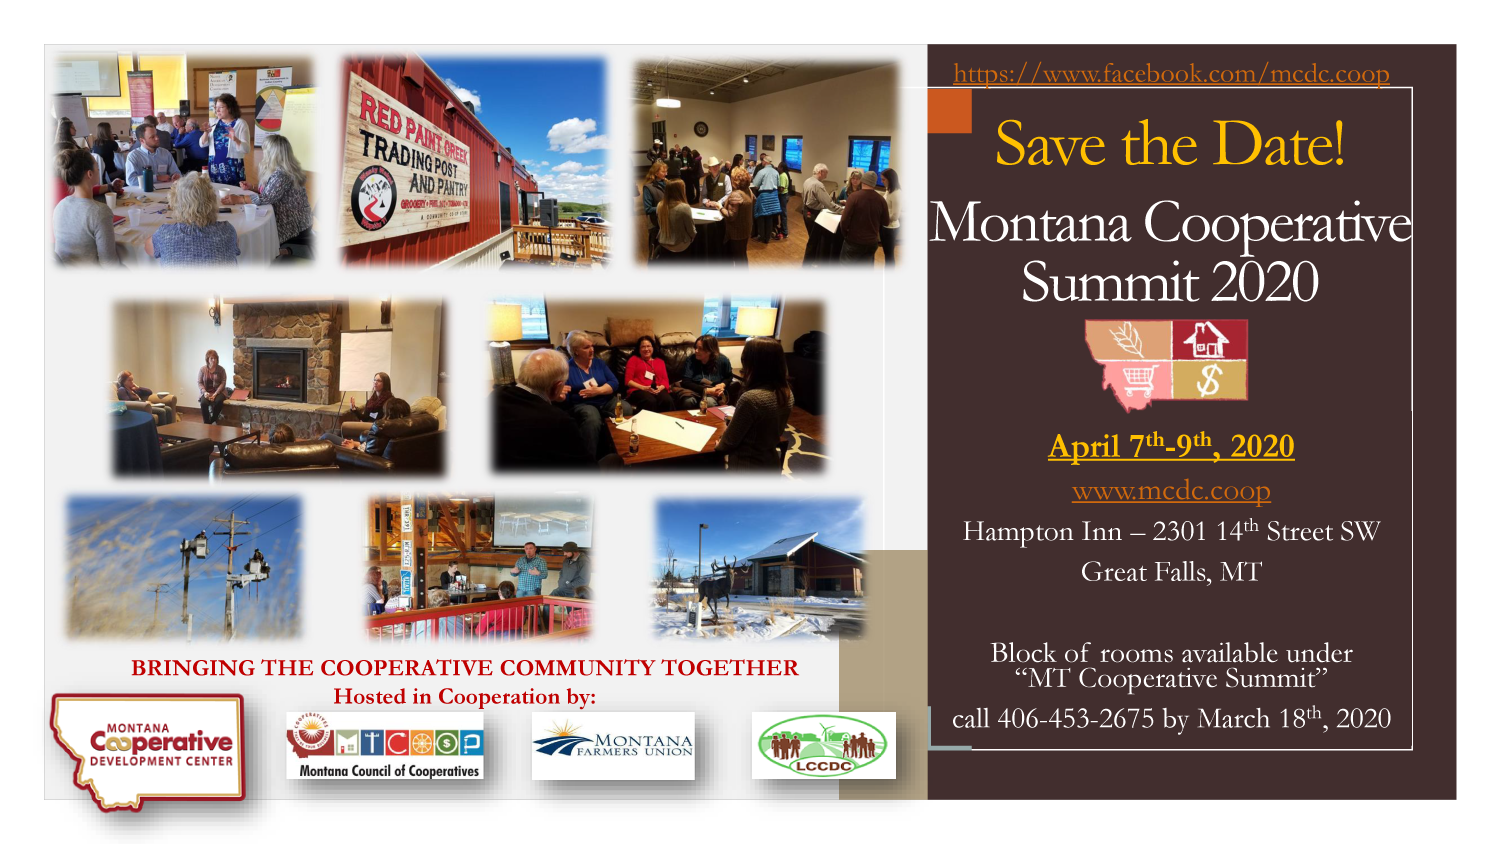 "Save the Date! Montana Cooperative Summit 2020. April 7-9, 2020 www.mcdc.coop Hampton Inn - 2301 14th St SW Great Falls, MT Block of rooms available under ""MT Cooperative Summit"" call 406-453-2675 by March 18th 2020. Bringing the Cooperative Community Together"